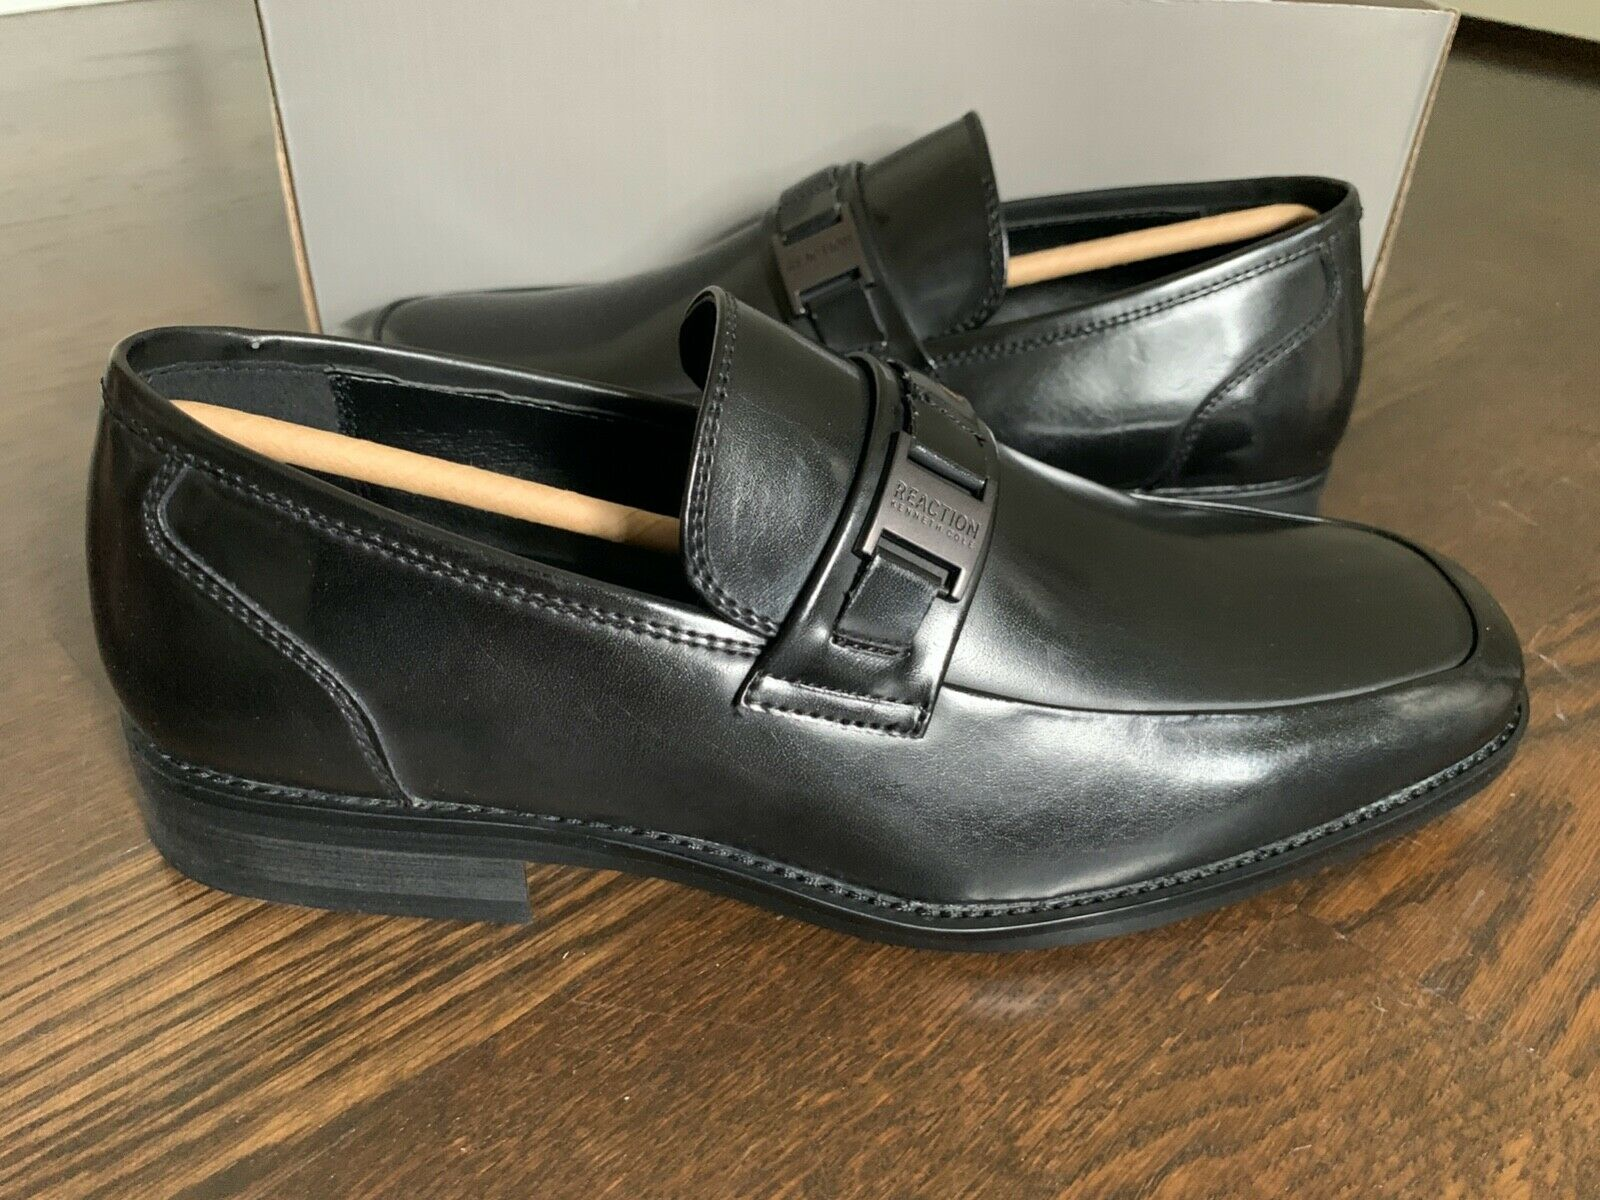 Mens Kenneth Cole REACTION Slip On Dress Shoes/Loafers - Size 7 - M - Black